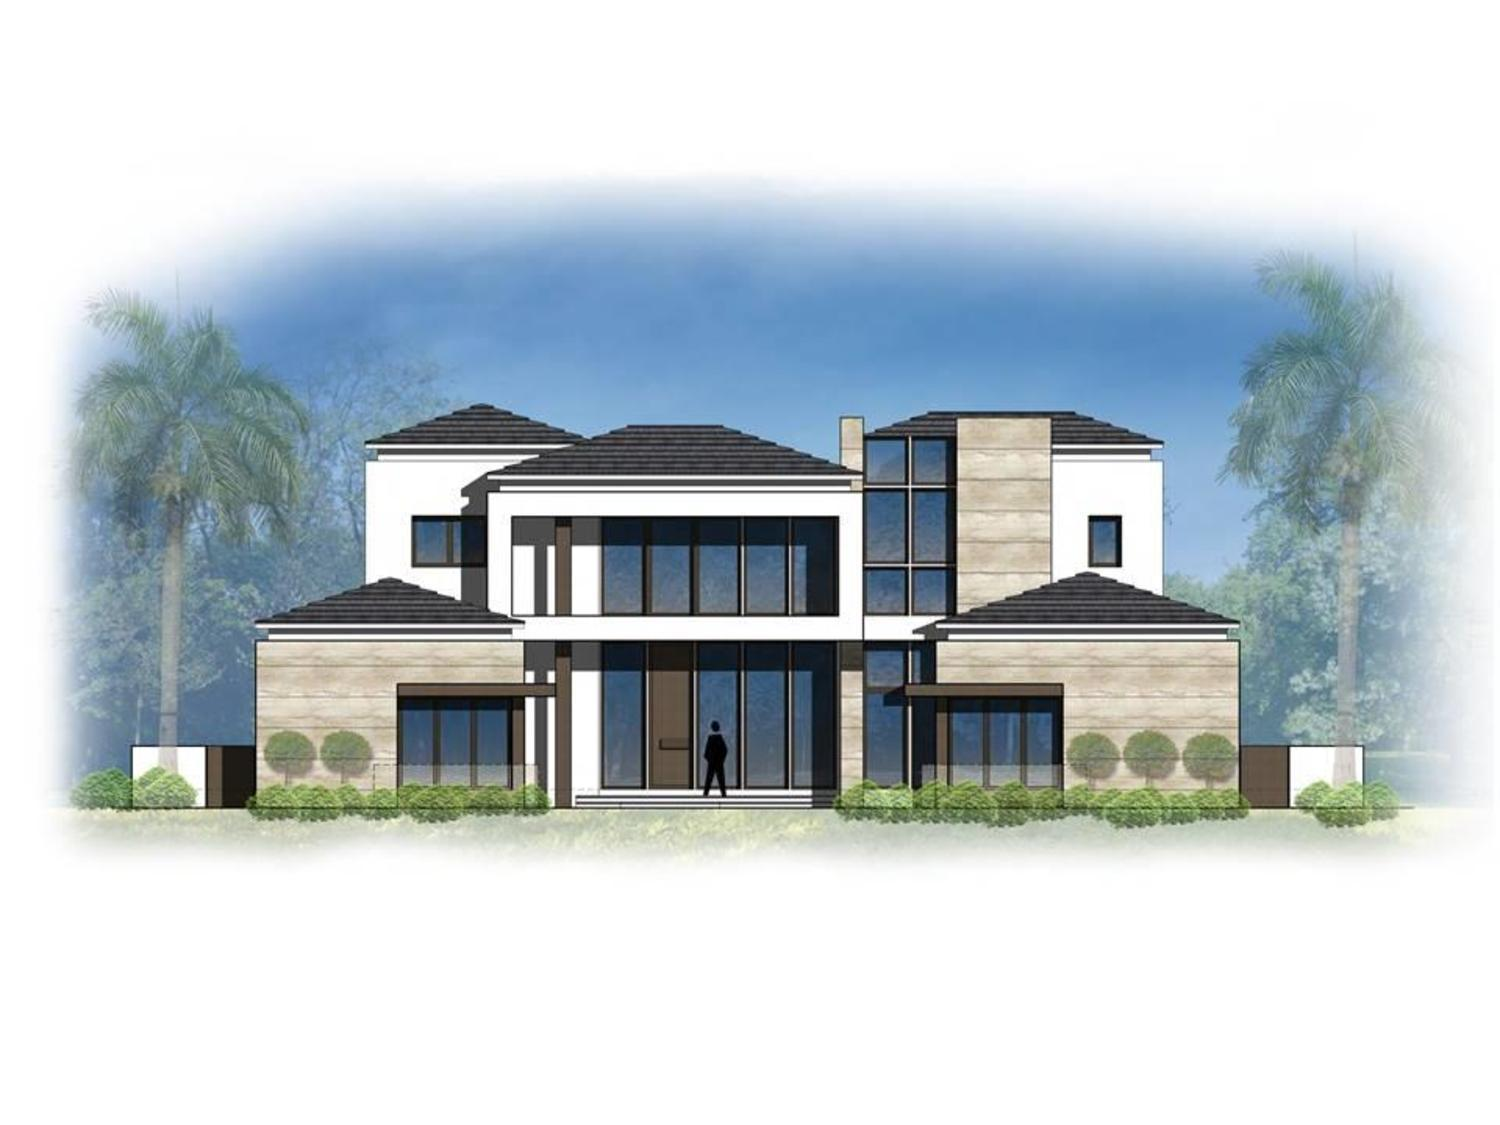 New Home for sale at 306 Eagle Drive in Jupiter